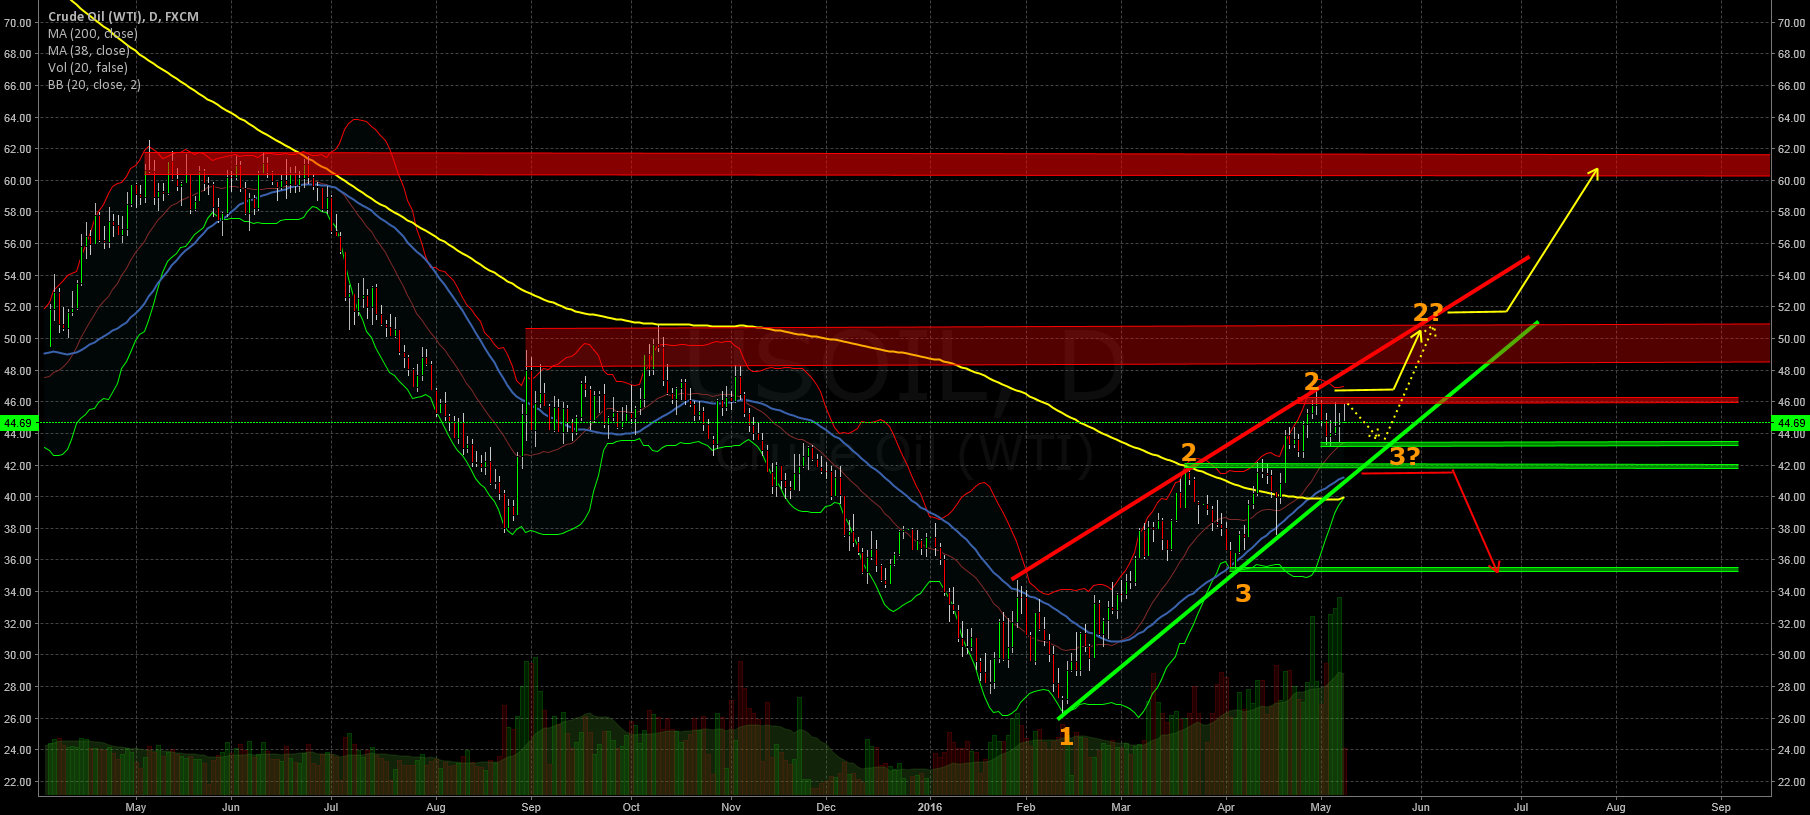 Last consolidation before we see the 50$?